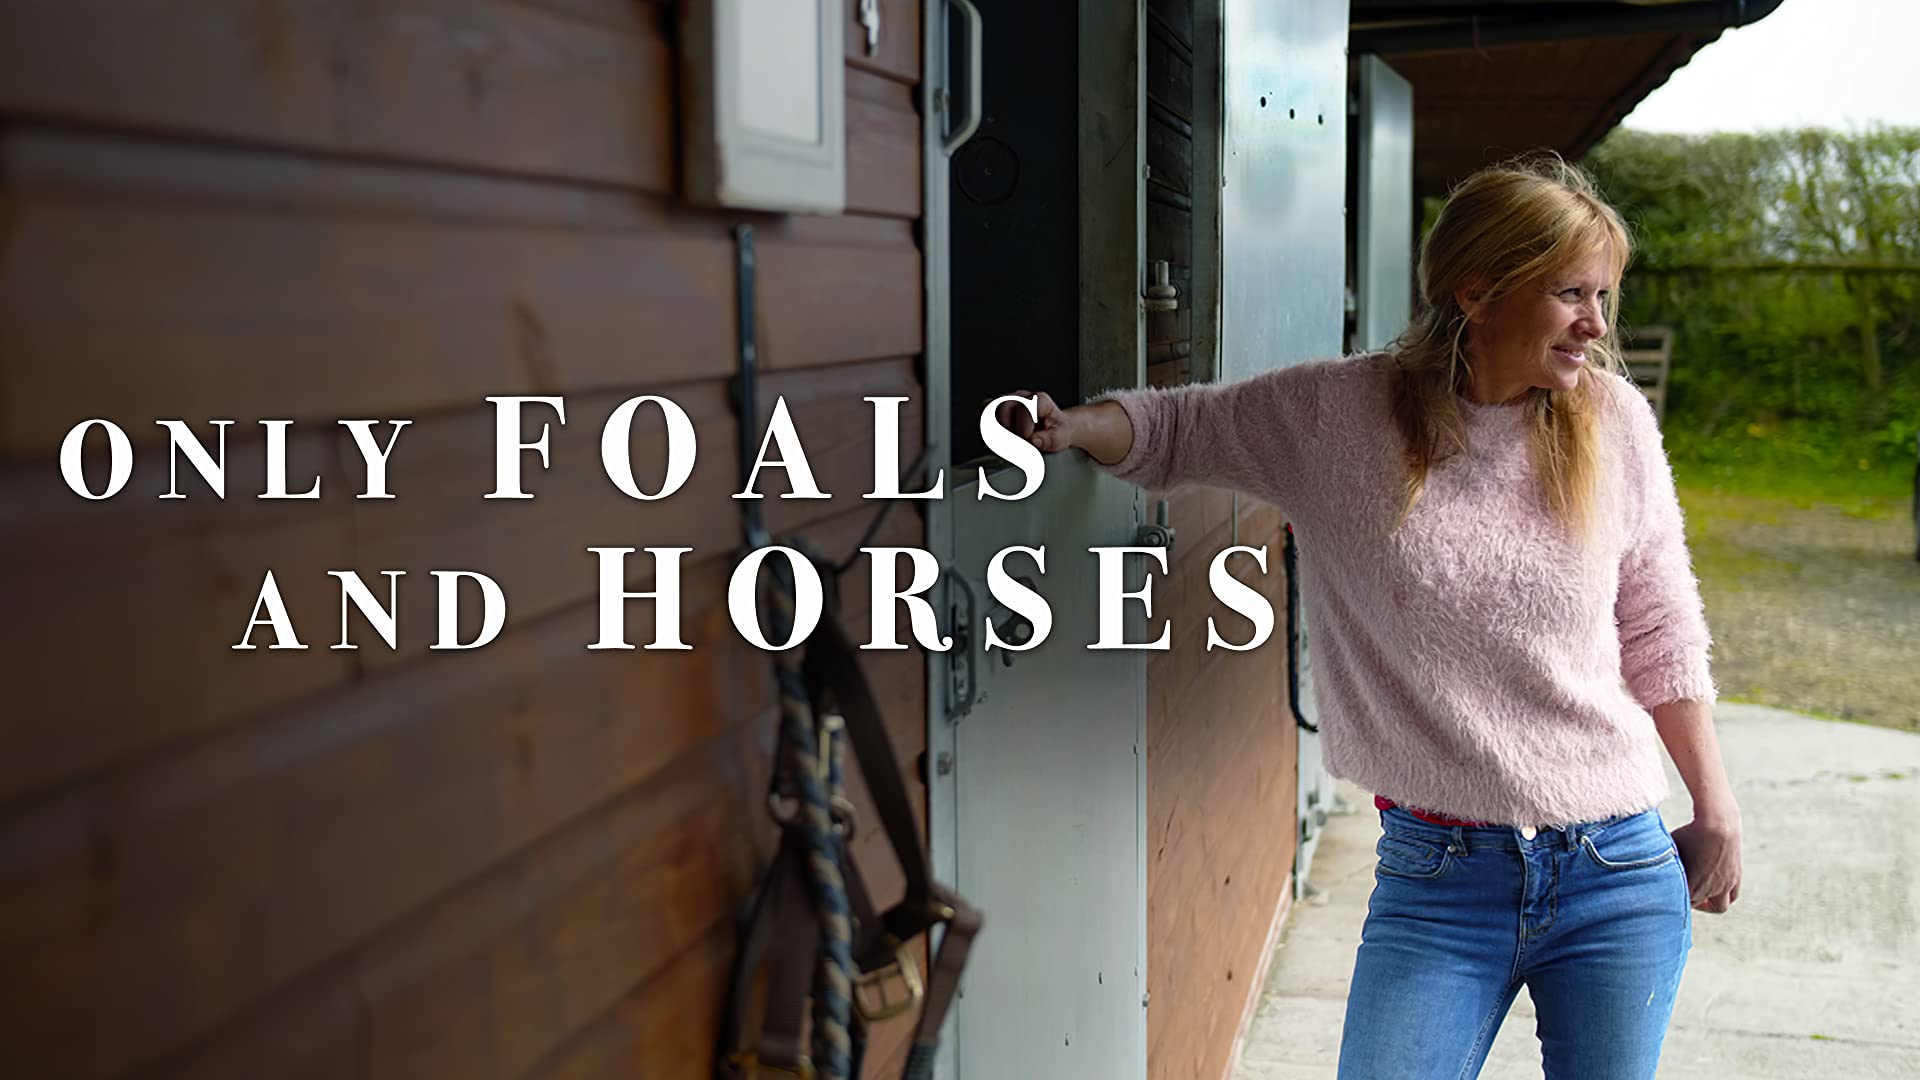 Only Foals and Horses - Series 1